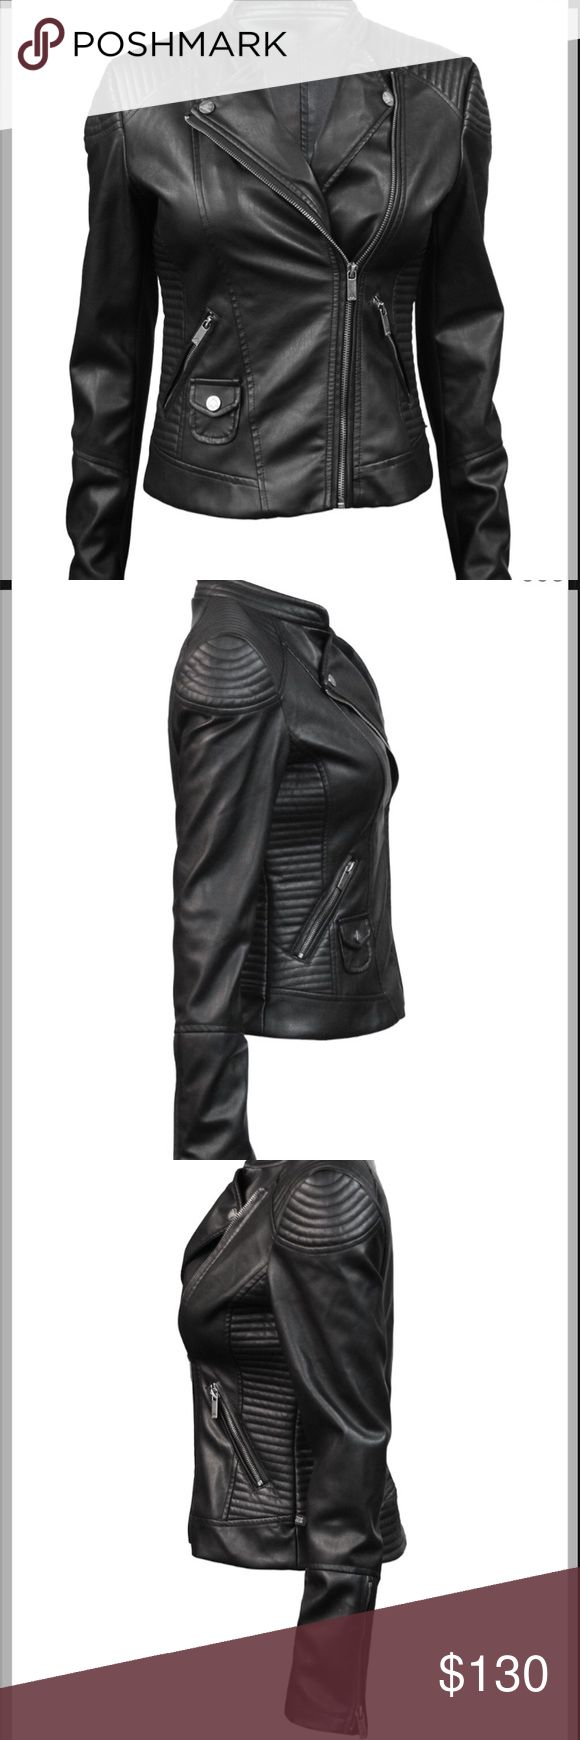 Top Gun vegan leather jacket Top Gun® Women's Vegan Leather Cafe Racer Jacket Soft, supple synthetic vegan leather is crafted into this classic jacket with a fitted silhouette. - Made with genuine synthetic vegan leather - Zip-up angled welt pockets - Zip-up front - Zip cuffs This is worn only a few times but it was small on me so it have two small tear on the inside of the jacket that can be fixed. I've added pictures. This jacket looks mint clean from the outside. This jacket also has life…